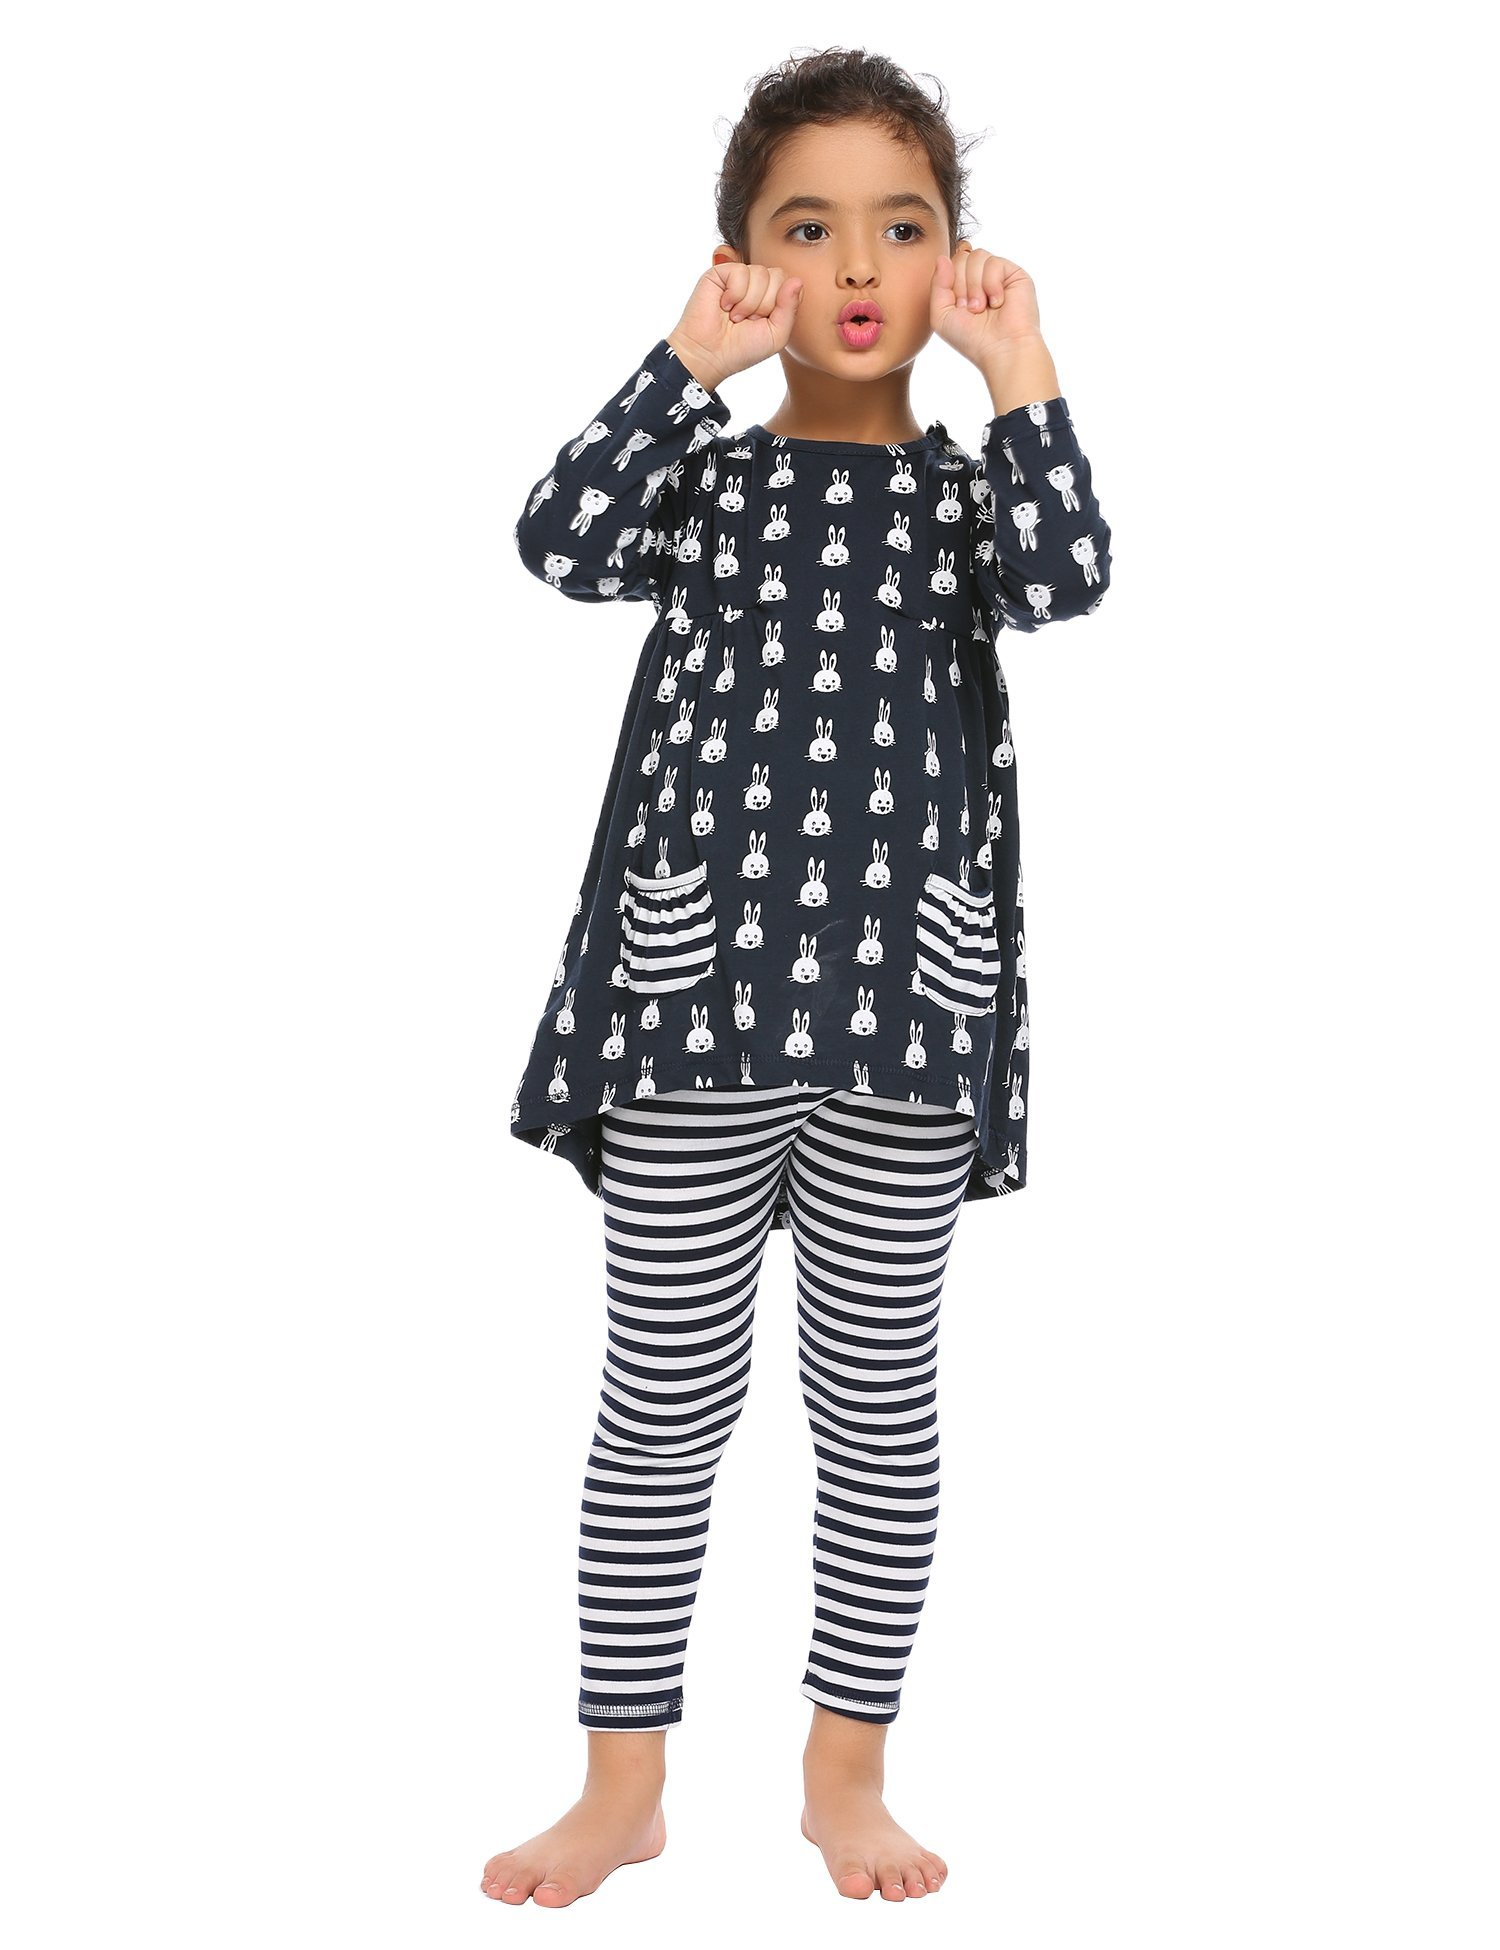 Arshiner Little Girls Long Sleeve Cute Rabbit Print with Pockets Cotton Outfit 12 pcs Pants Sets Top+Legging,Navy Blue,130(7-8years old) by Arshiner (Image #4)